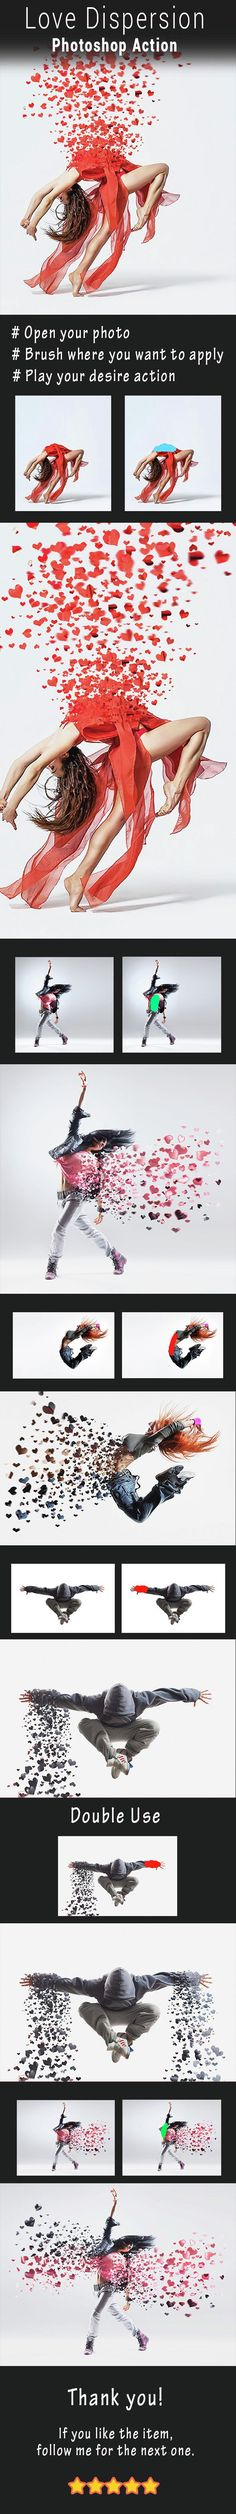 Love Dispersion Photoshop Action